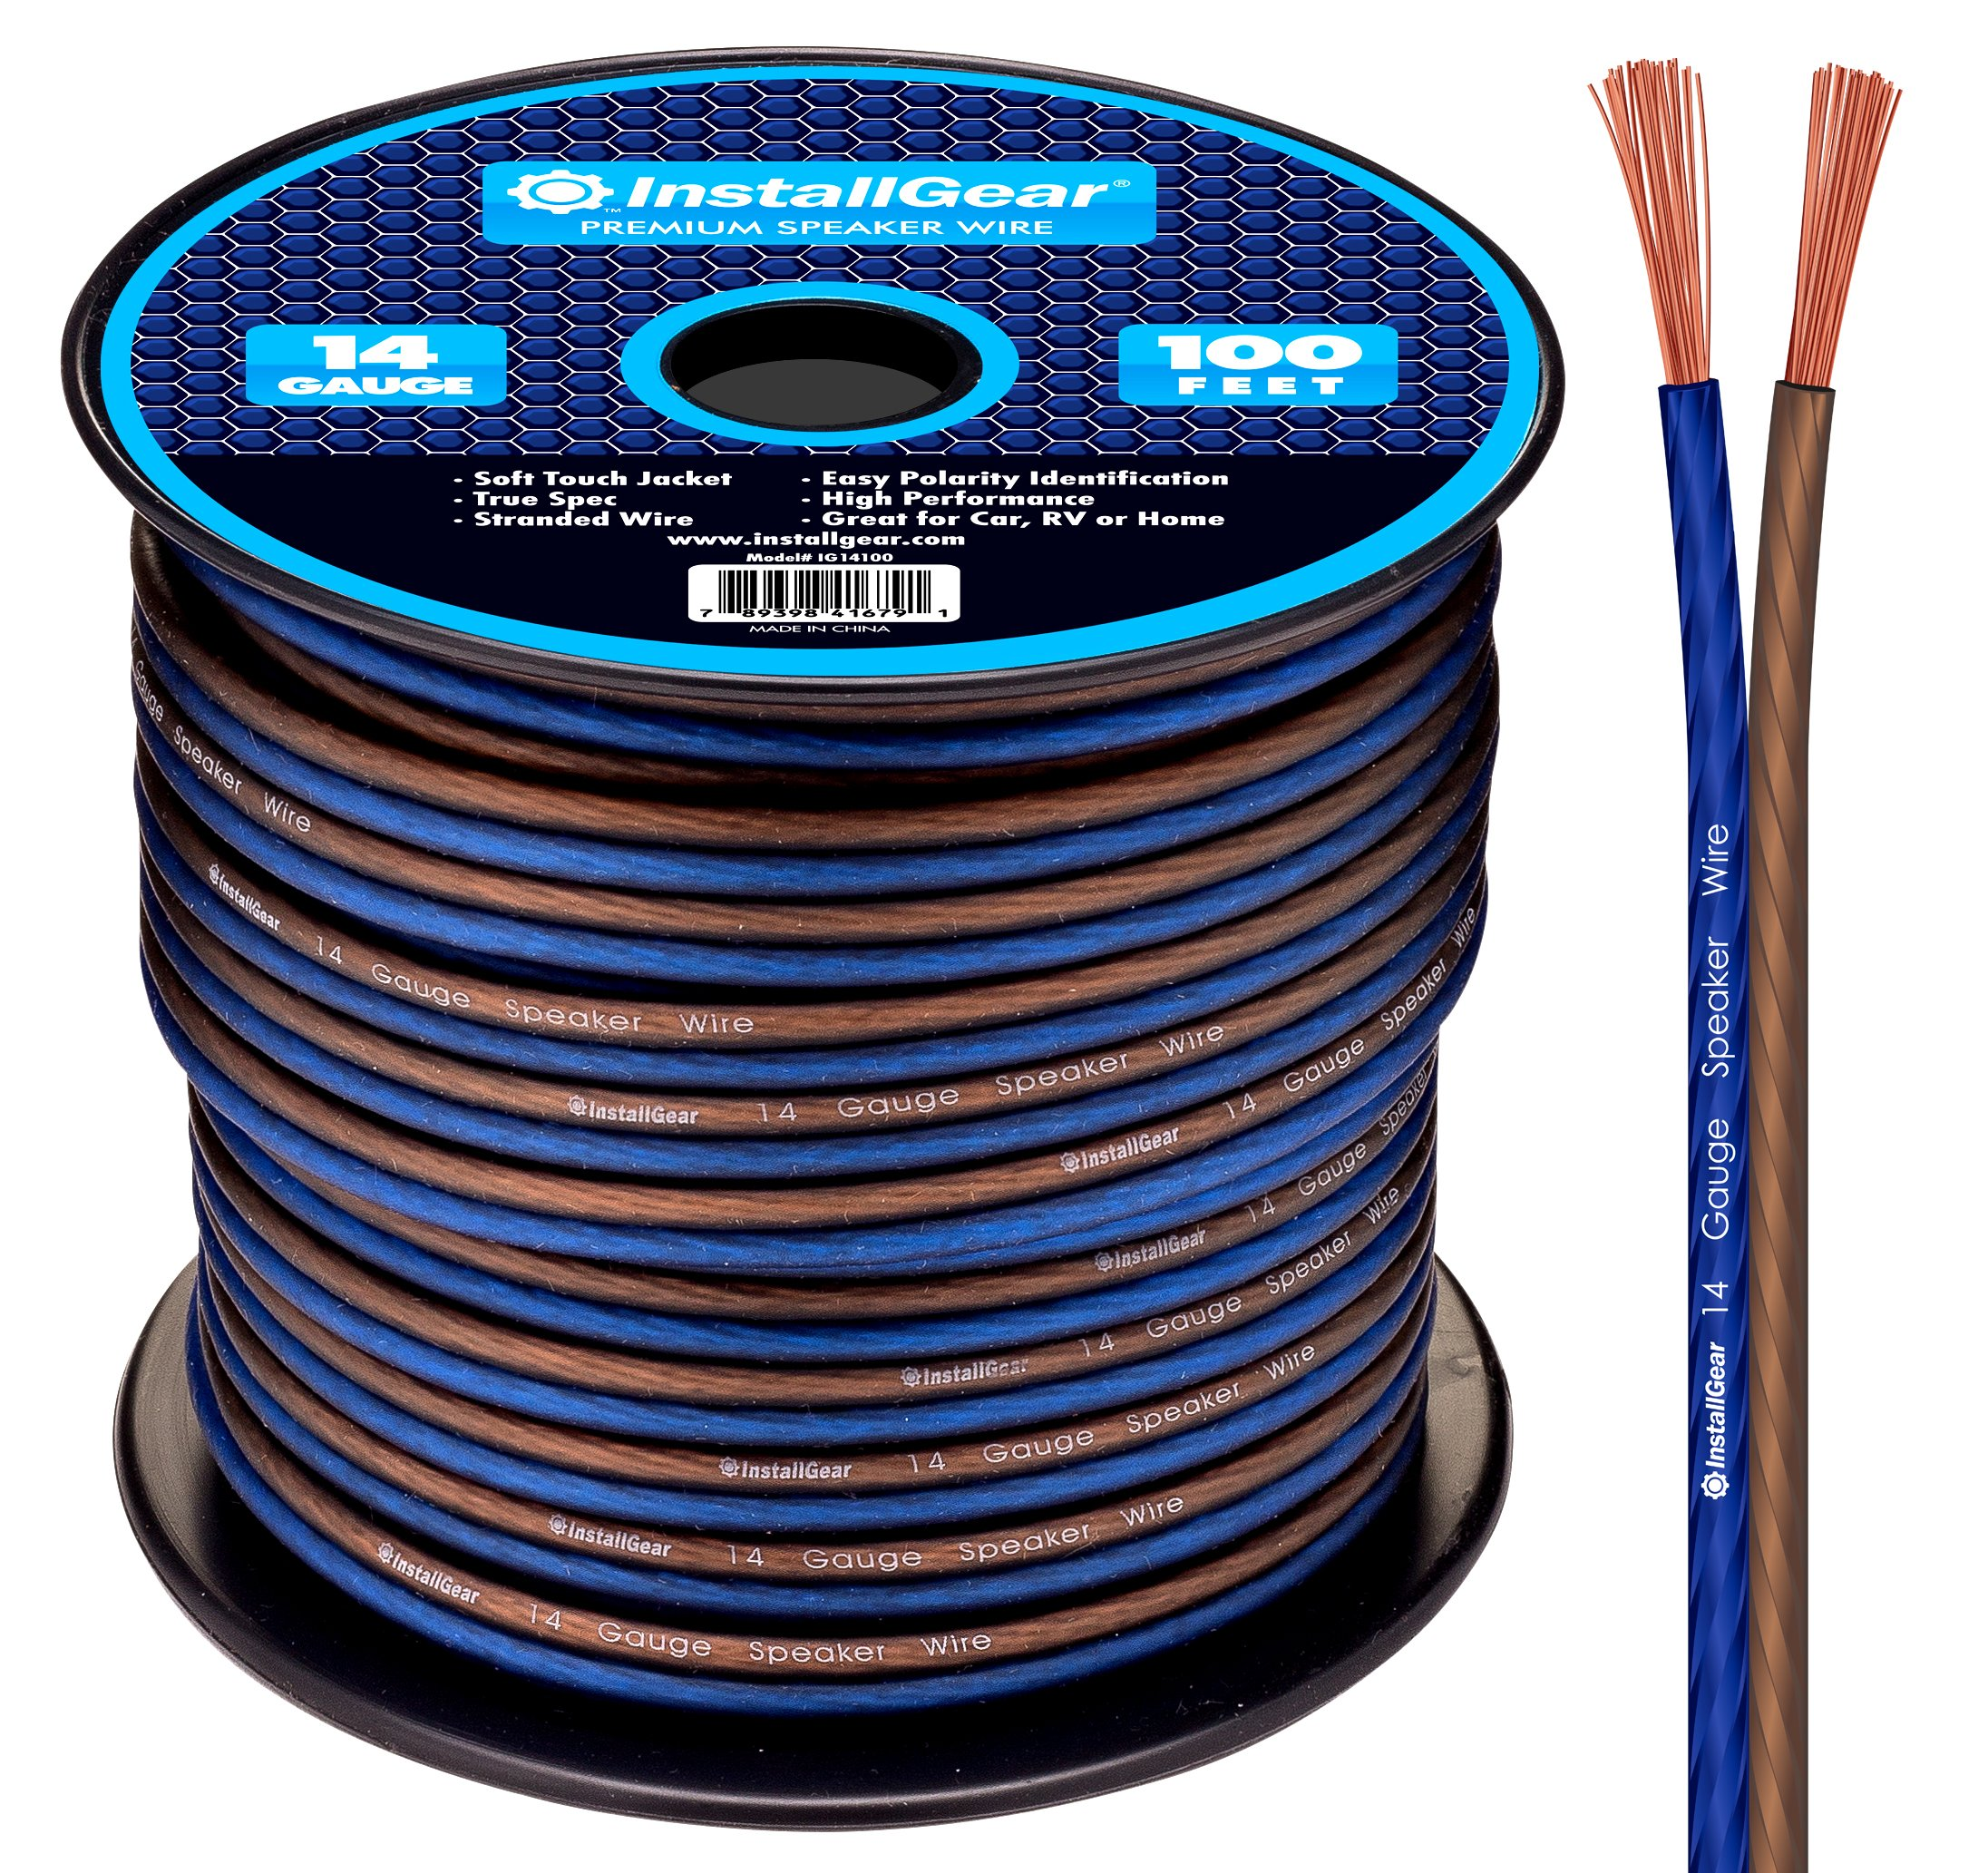 InstallGear 14 Gauge AWG 100ft Speaker Wire True Spec and Soft Touch Cable by InstallGear